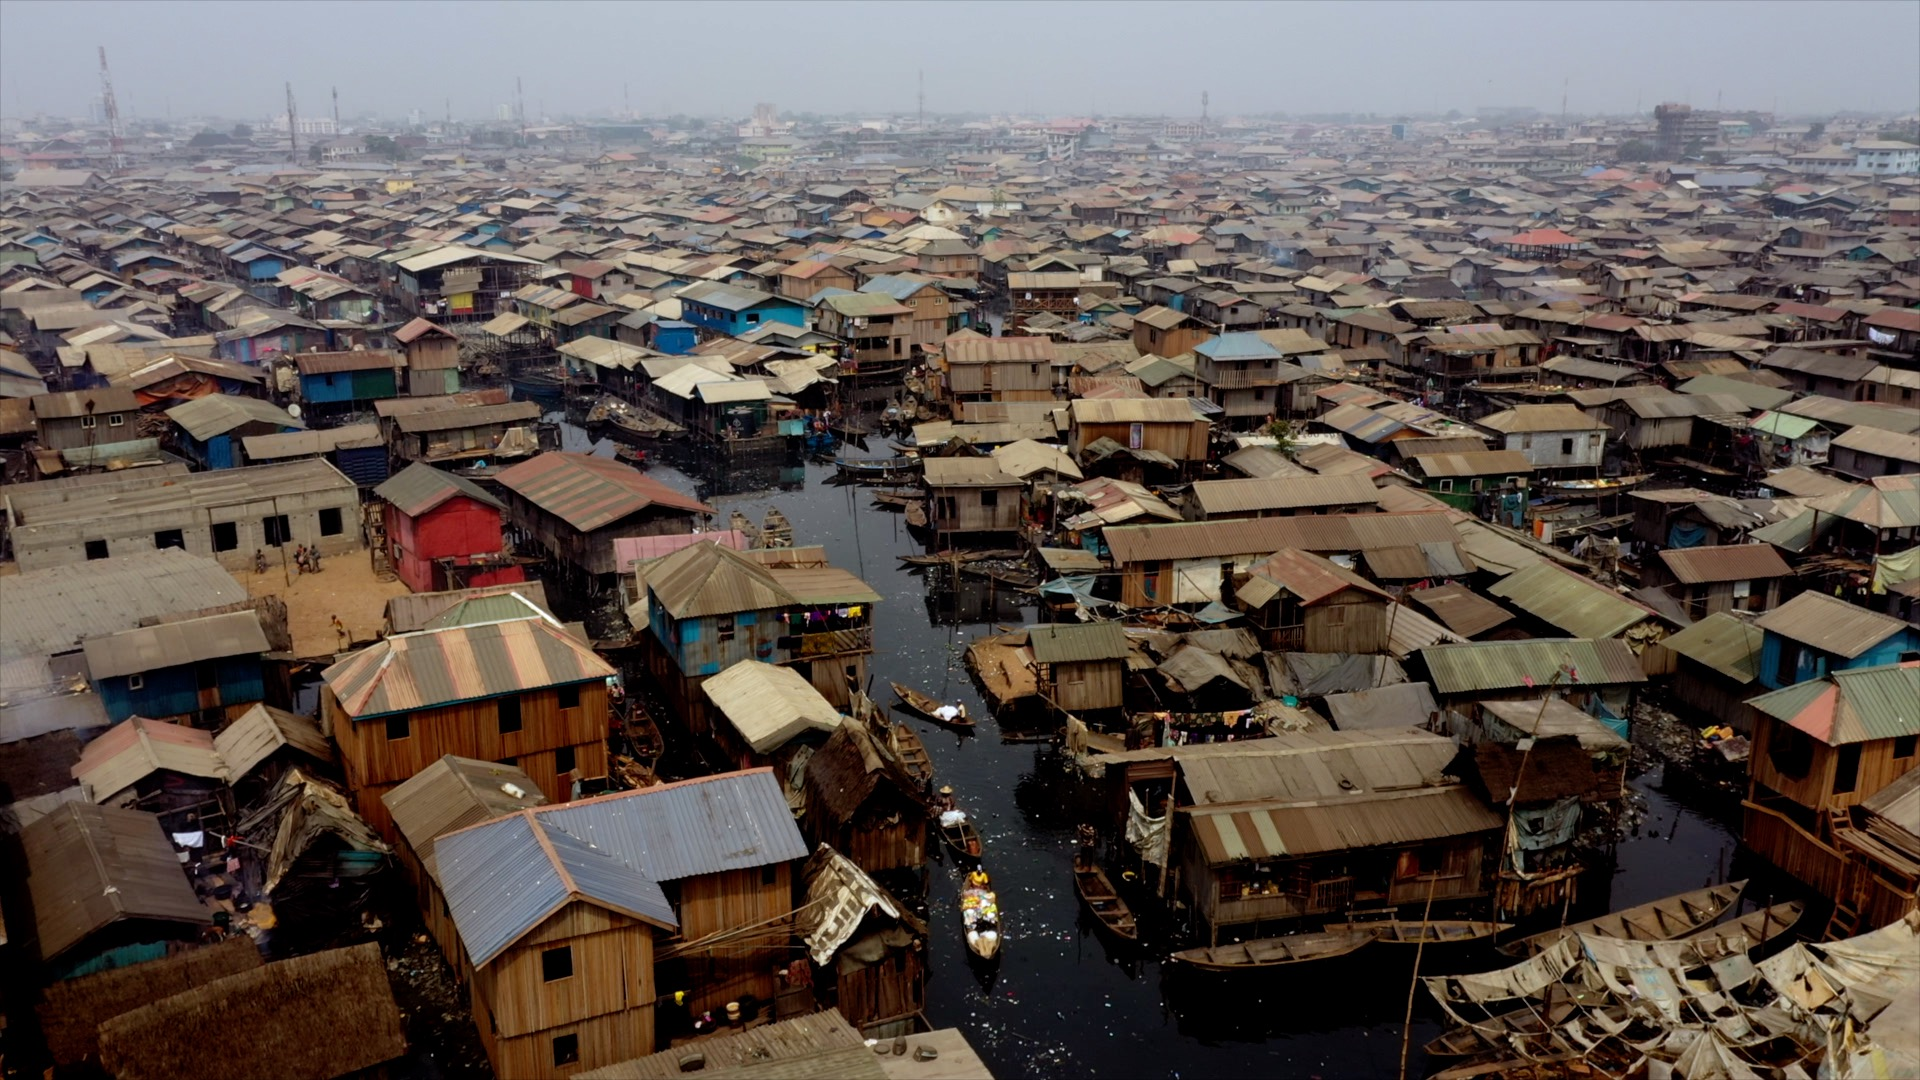 Aerial view of Makoko slum